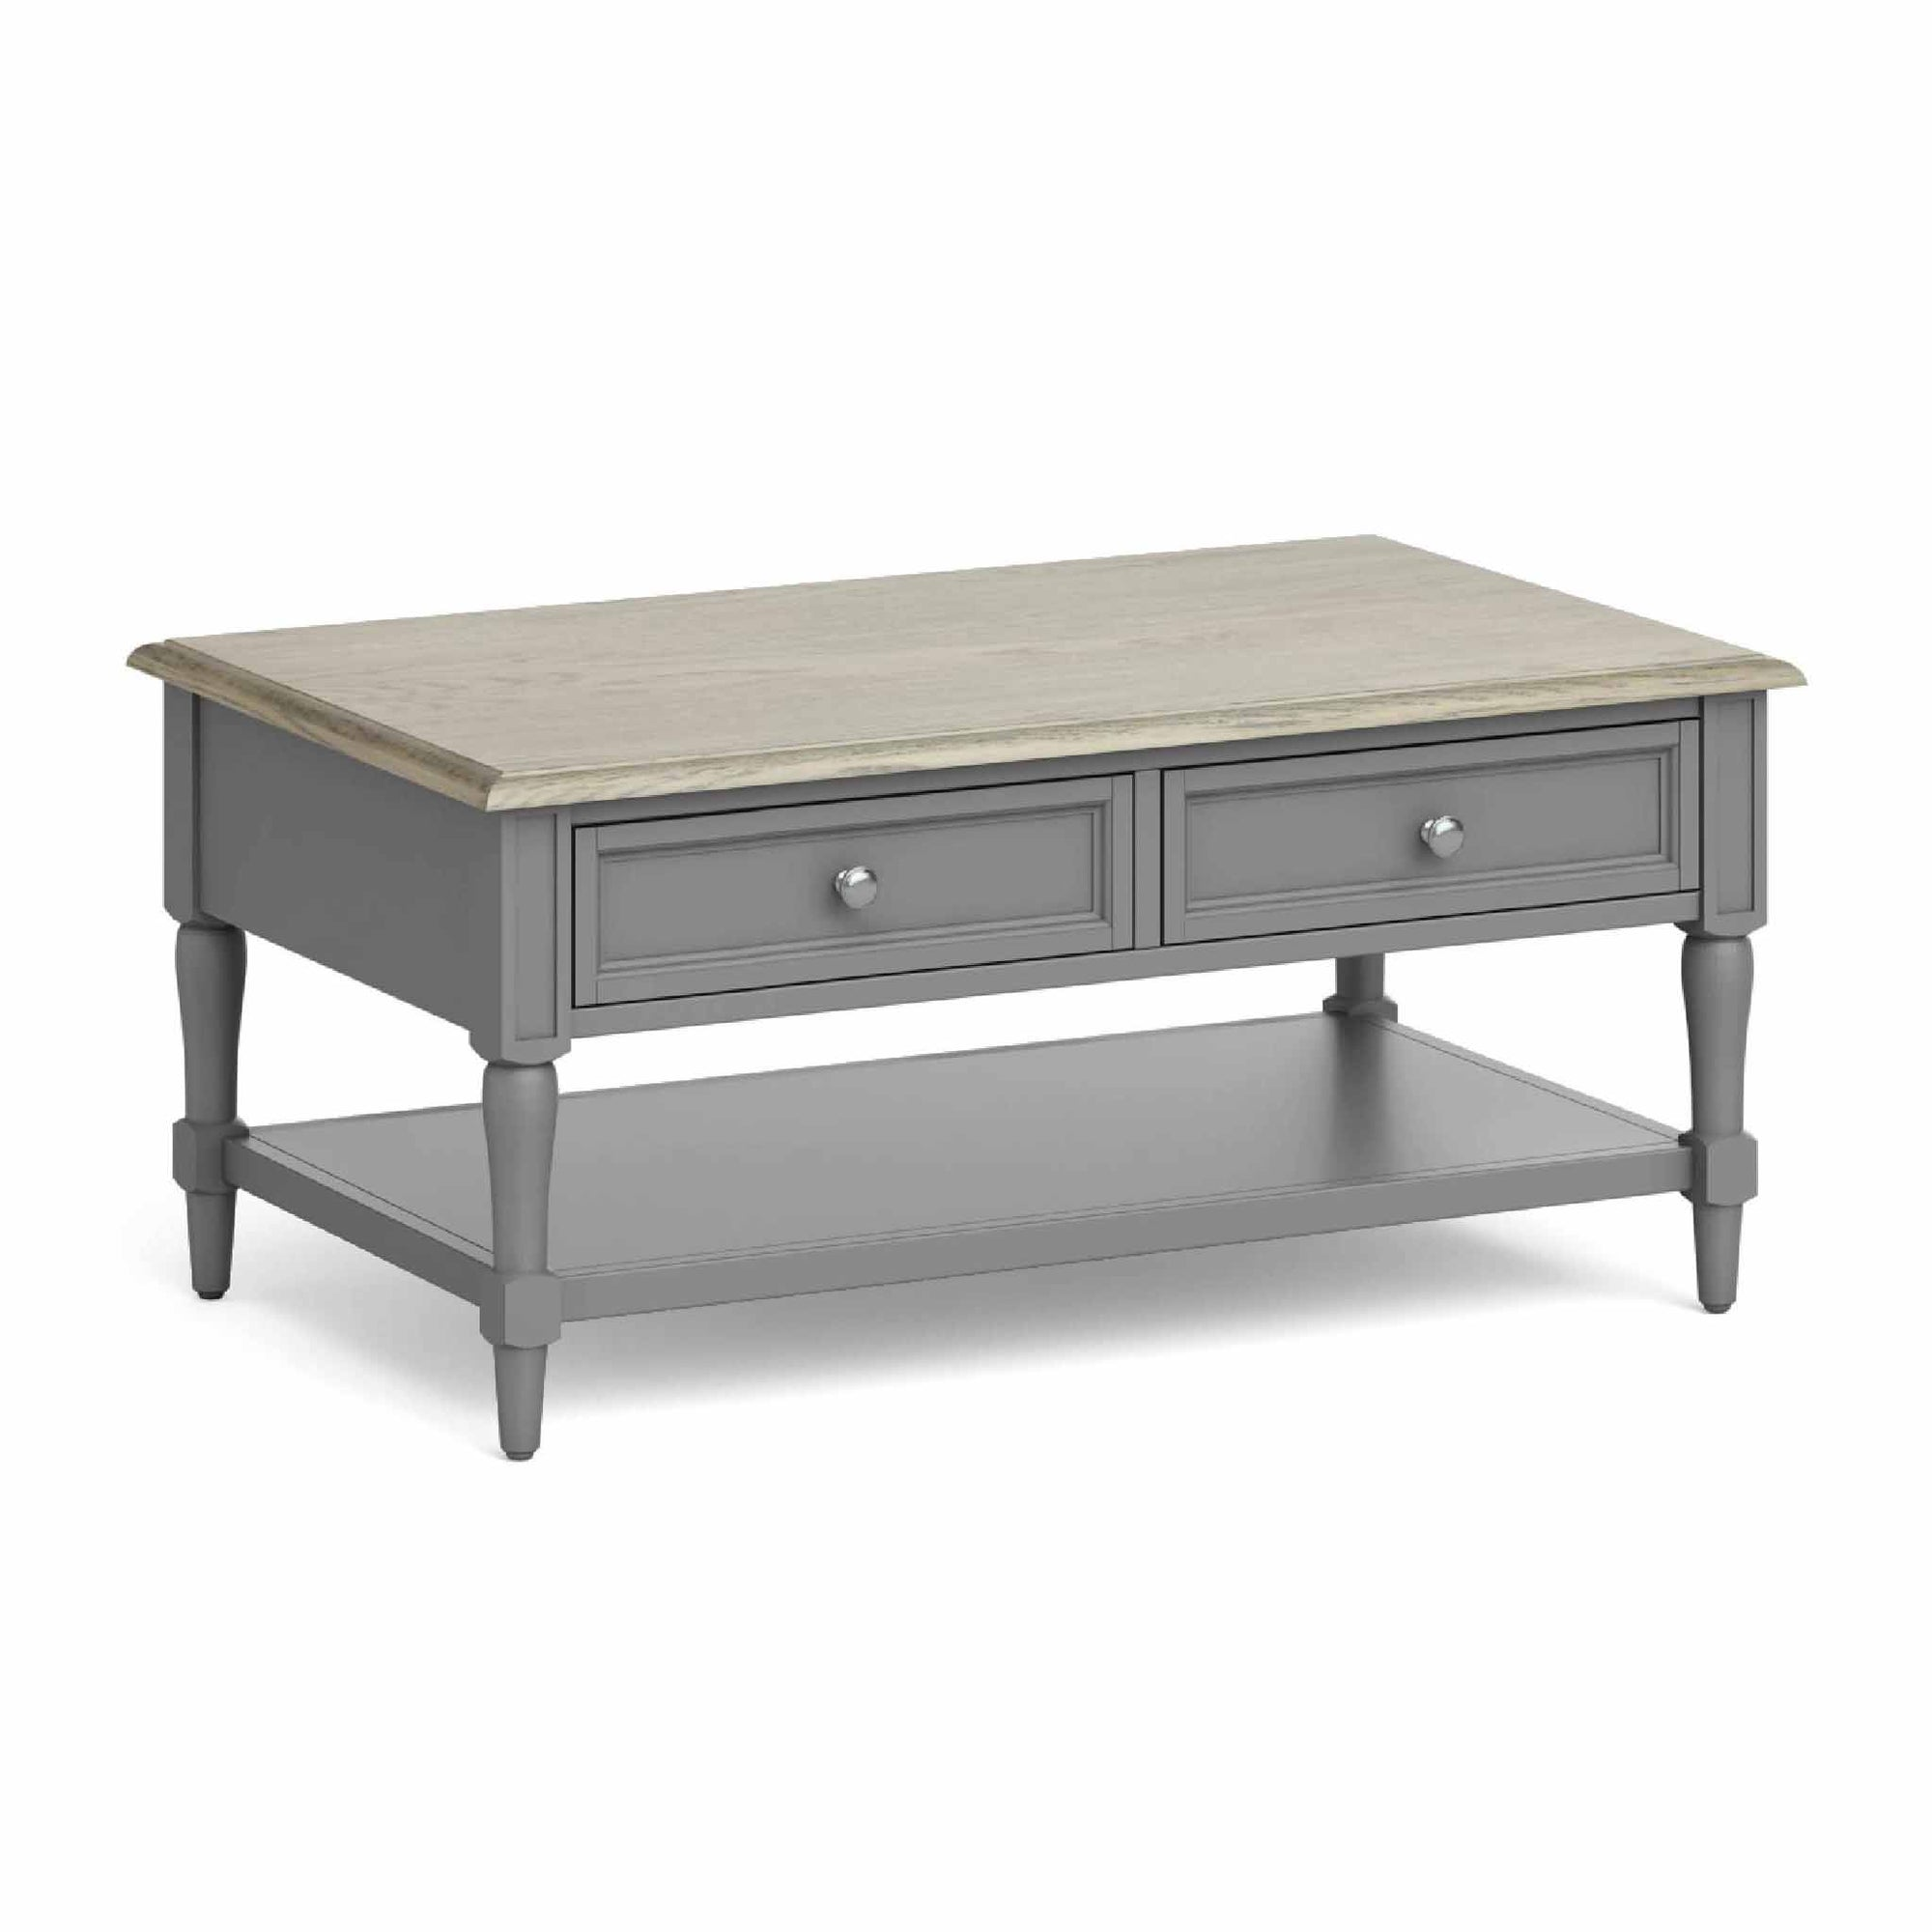 The Mulsanne Grey French Style Coffee Table with Oak Top from Roseland Furniture